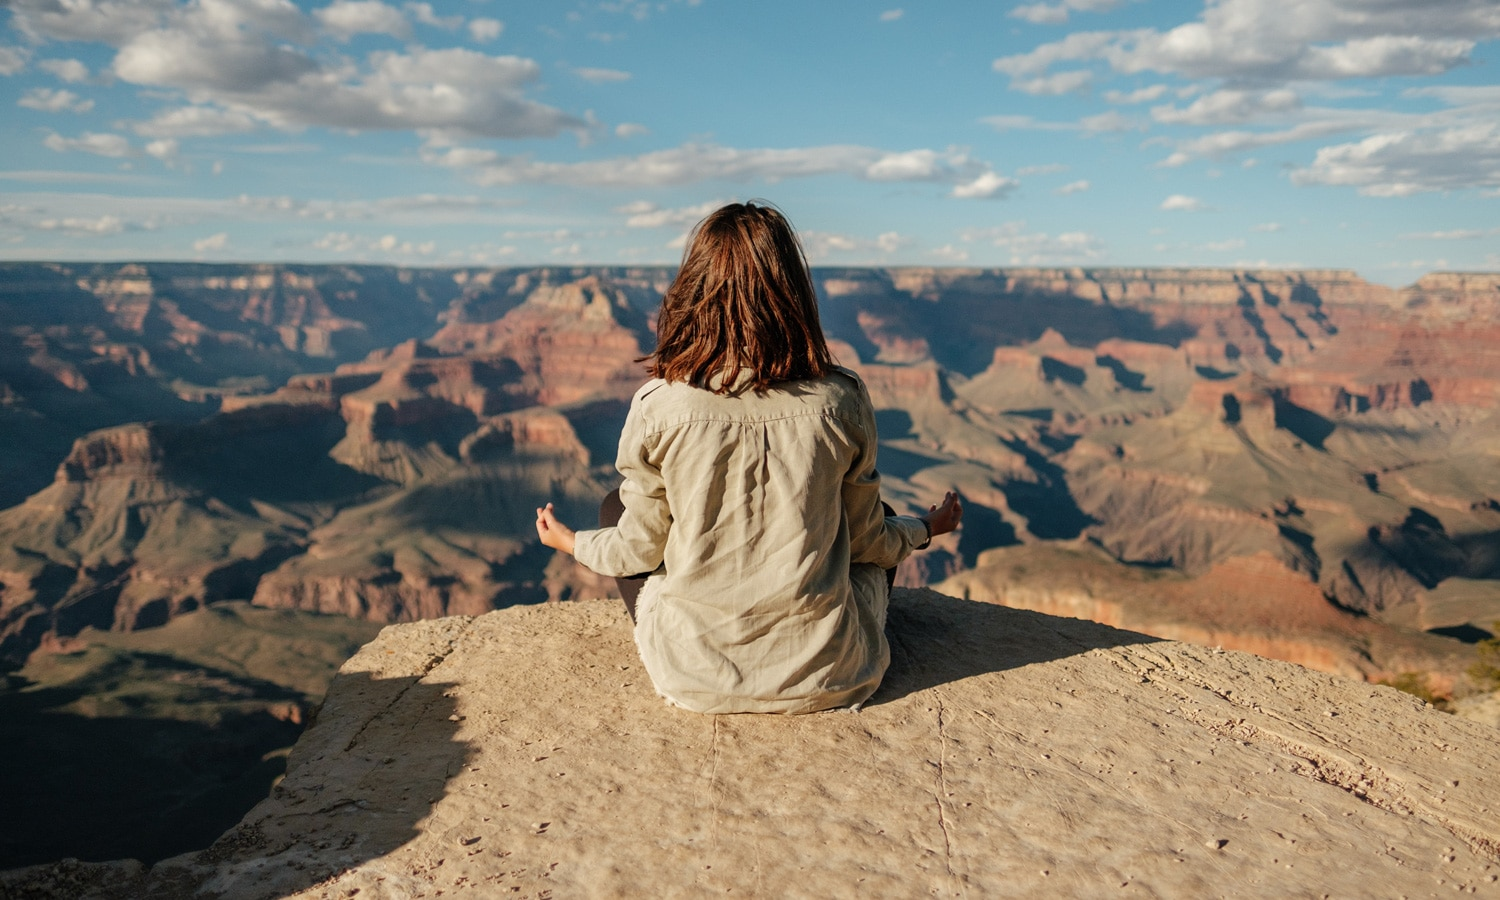 5 Meditation Techniques To Help You Stay Calm During Stressful Times